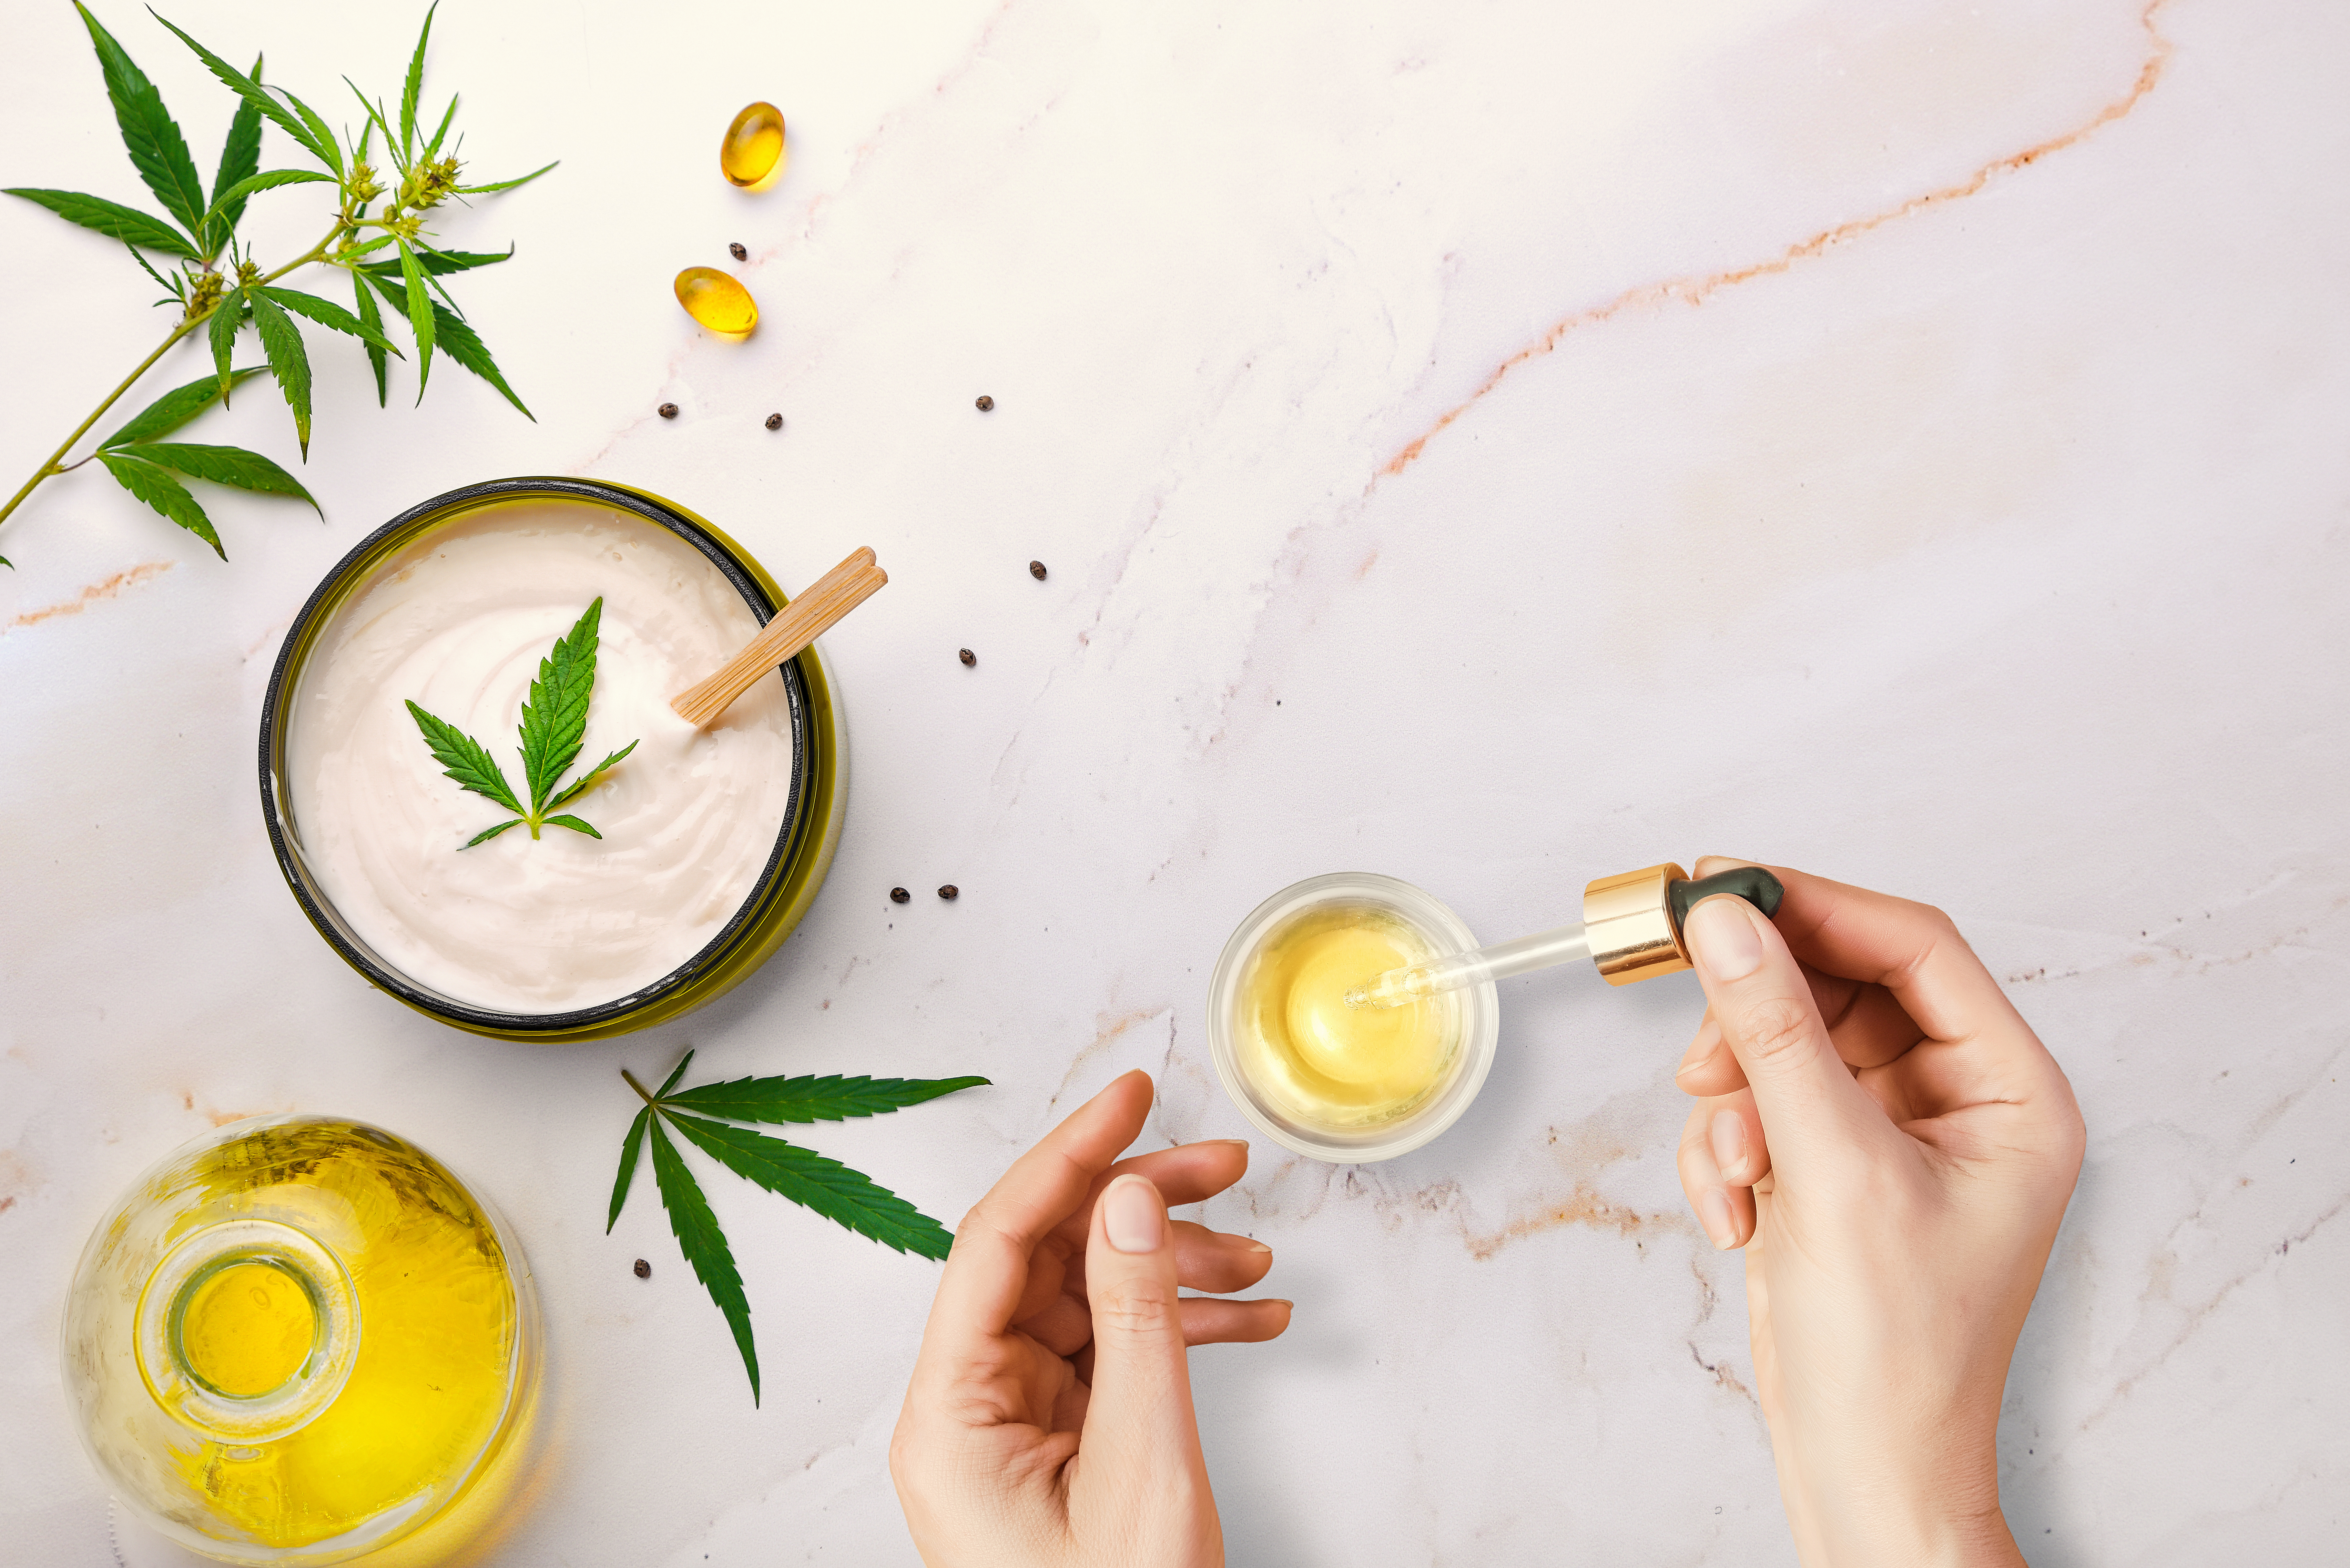 CBd Oil Pipette with CBD cosmetic oil in female hands on a table background with cosmetics, cream with cannabis and hemp leaves, marijuana.